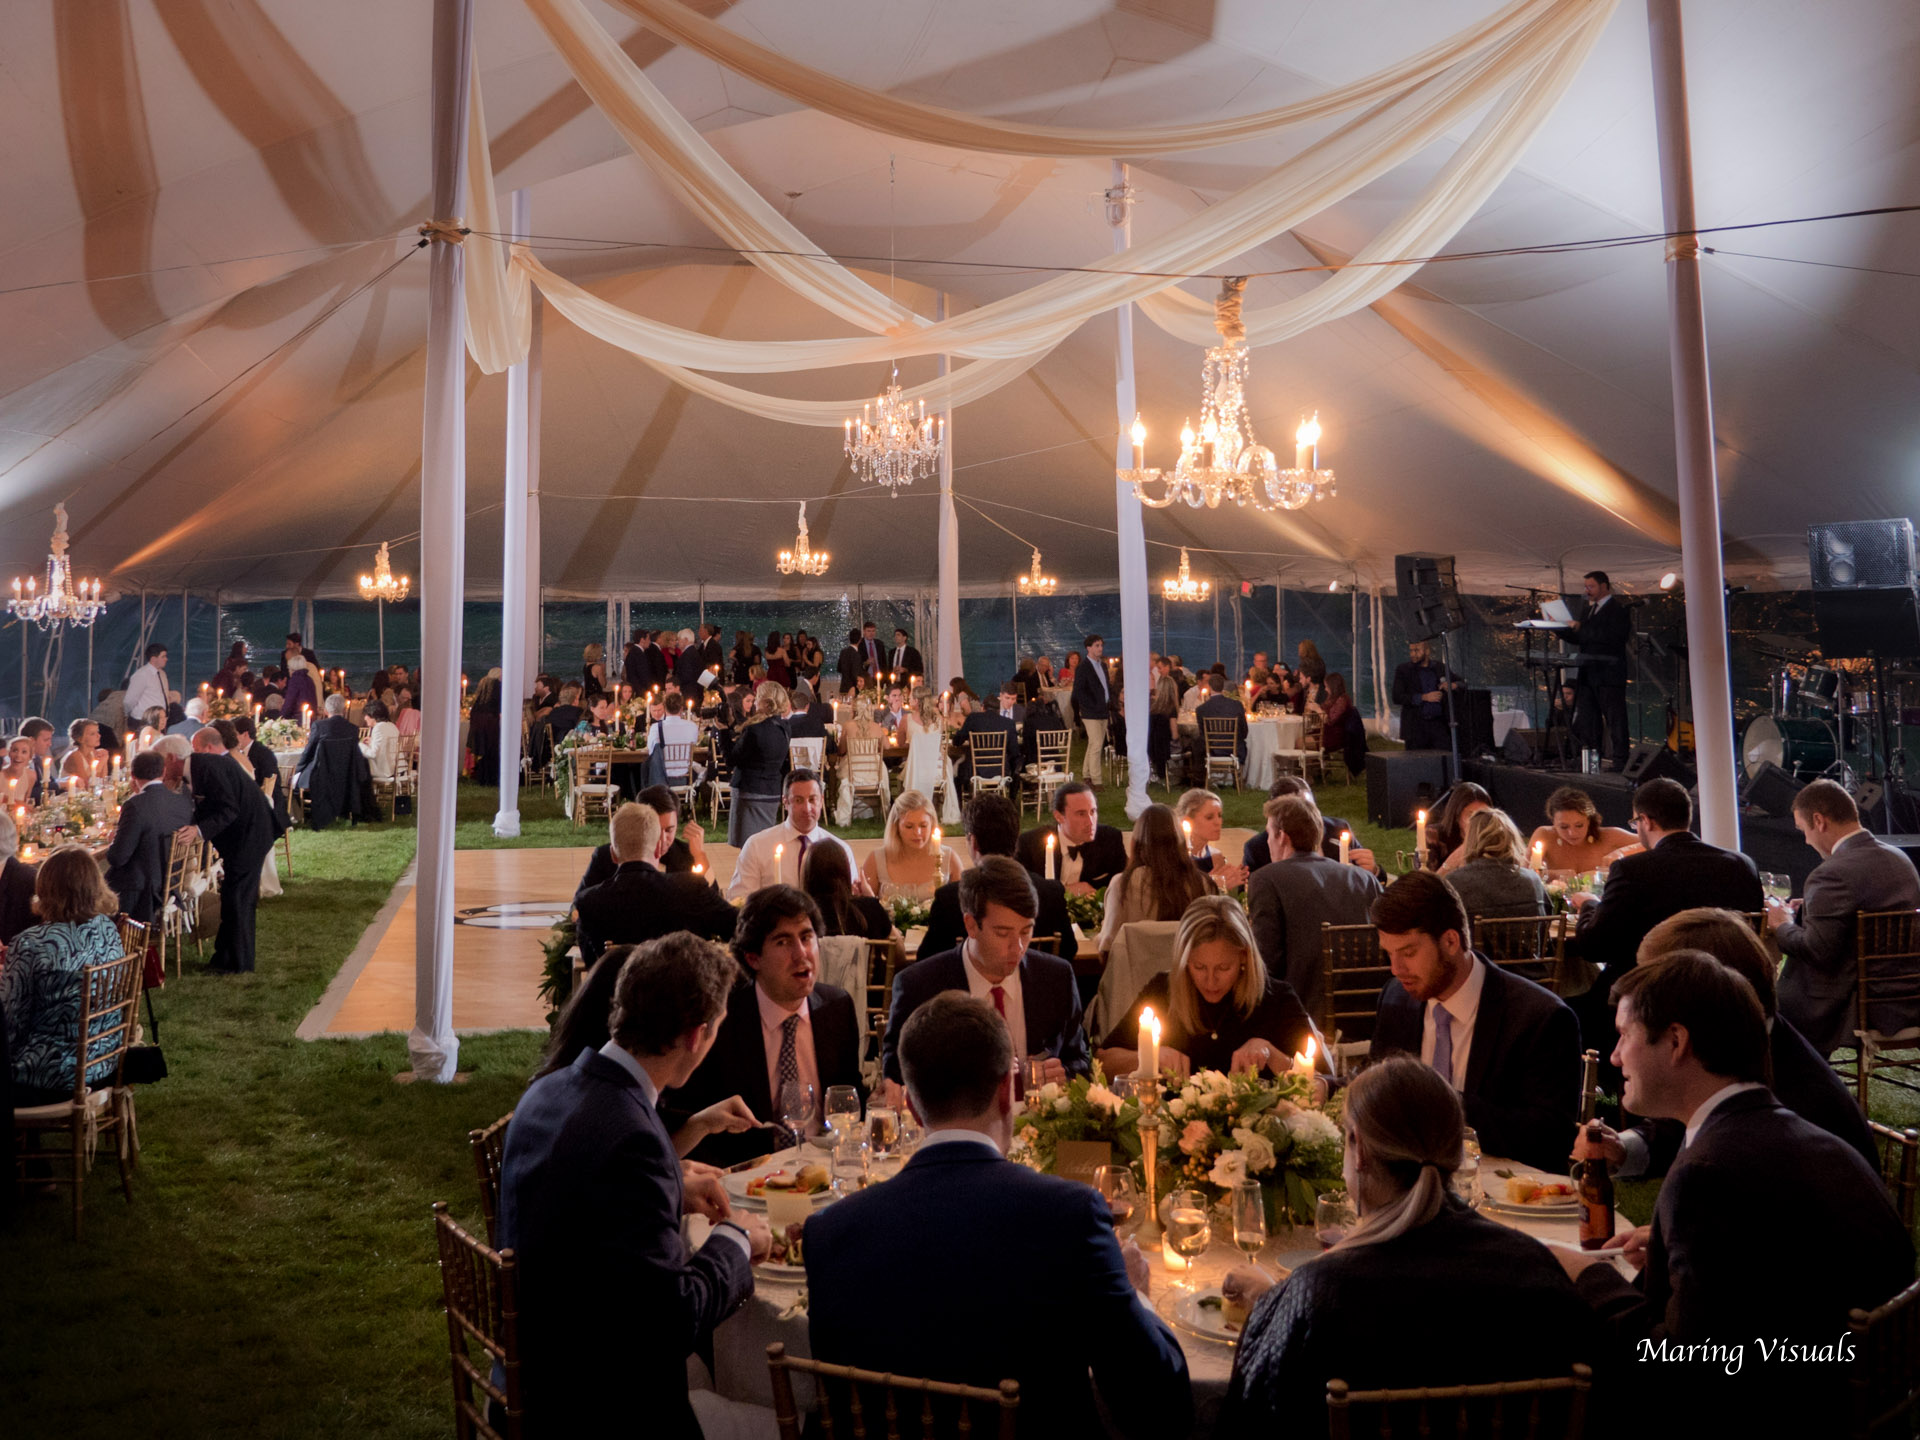 A mixture of round and long tables accented by chandeliers and candlelight have the tent a heartwarming atmosphere